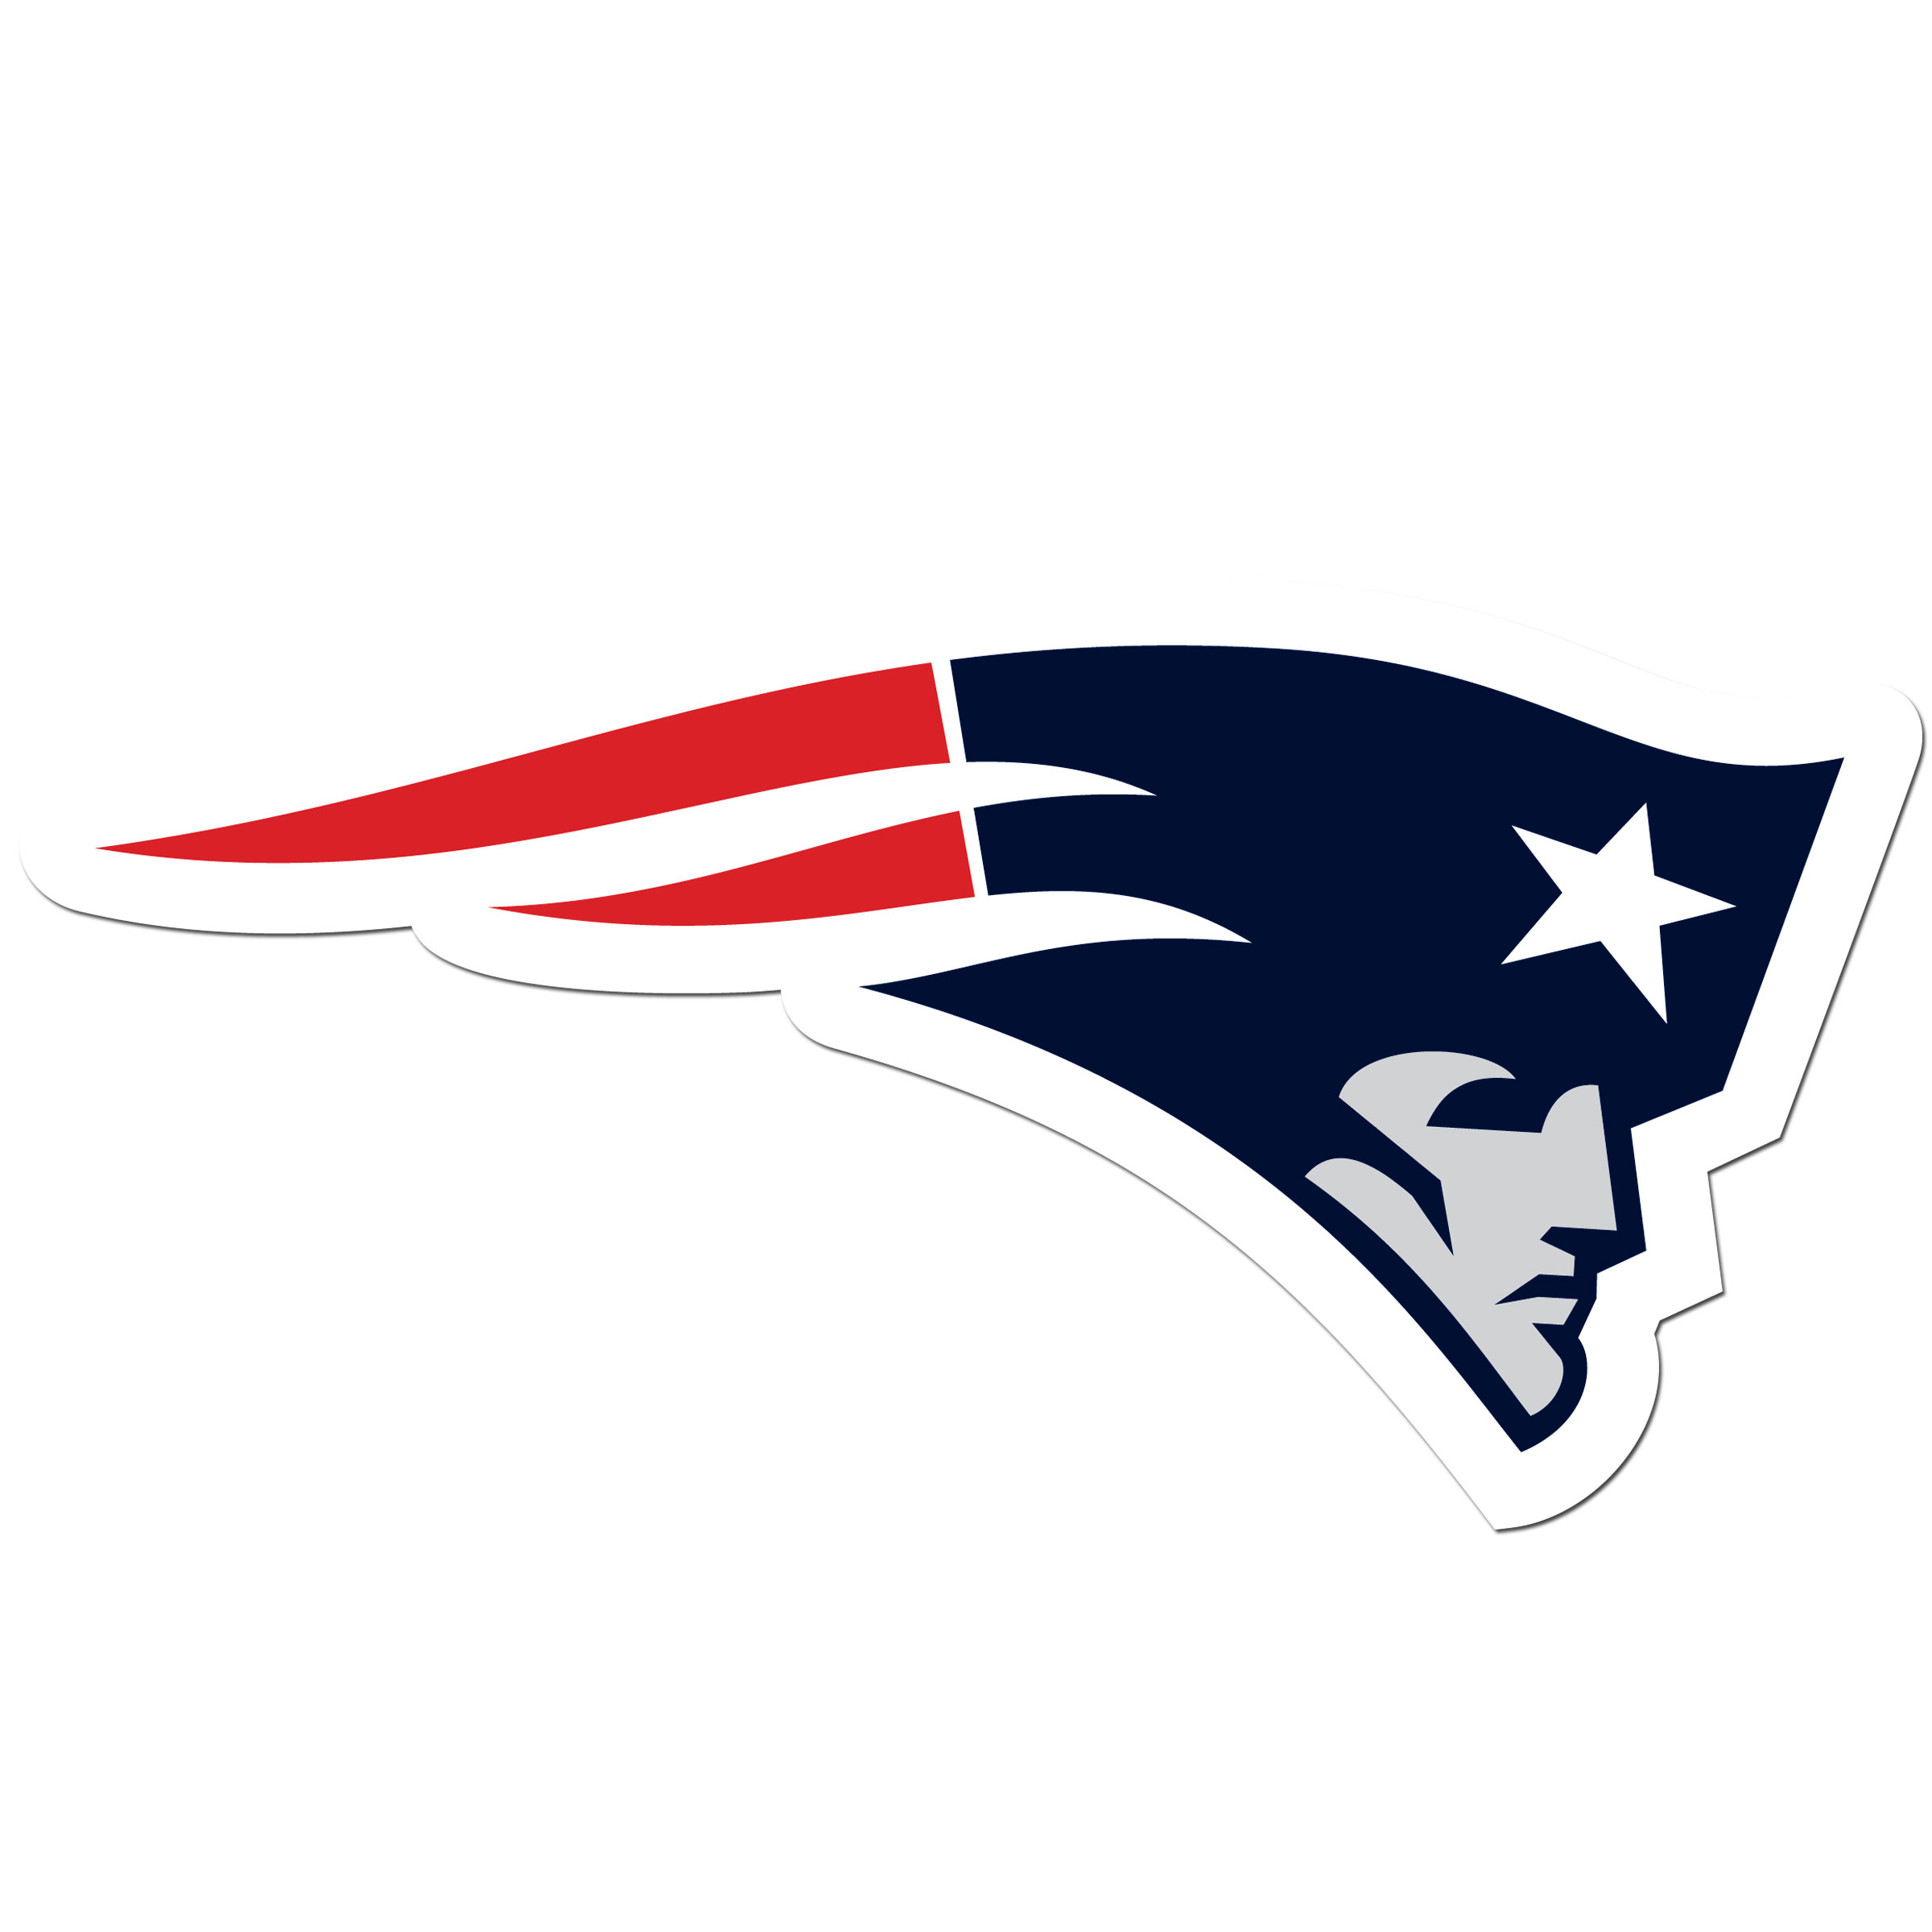 New England Patriots 8 inch Auto Decal - This bold, 8 inch New England Patriots is a great way to show off your team pride! The low tack vinyl decal is easily positioned and adjusted to make sure you get that logo in just the right spot on your vehicle. Designed to be used on the outside of the window.